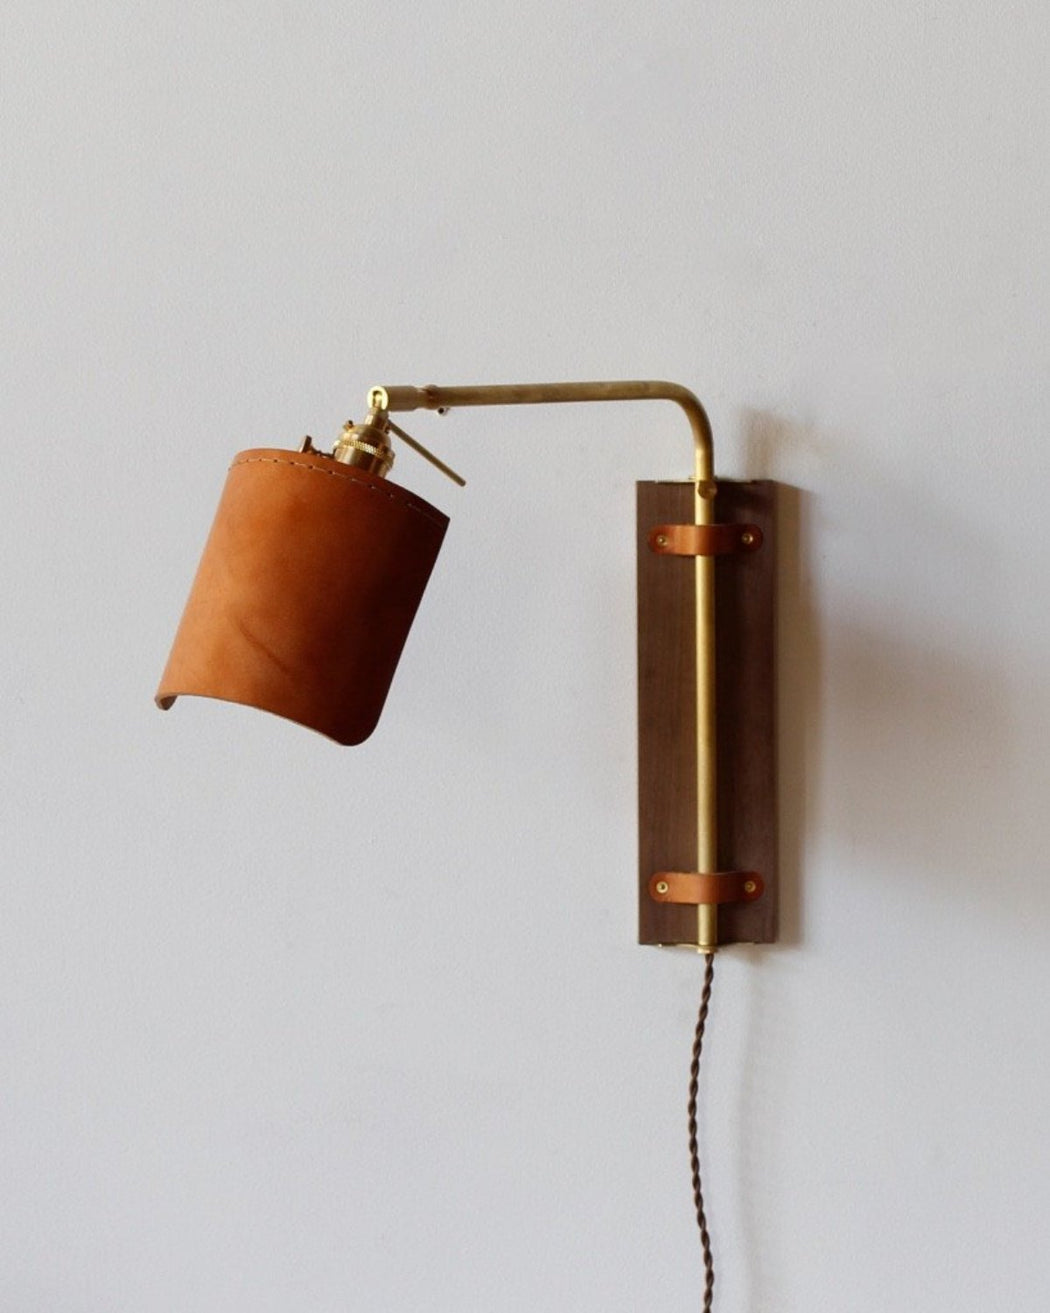 Wall sconce Swing Arm Leather Wall Sconce Robert Ogden Ava Leather Wood Brass Wall Sconce Lostine Ava Wall Sconce Lostine